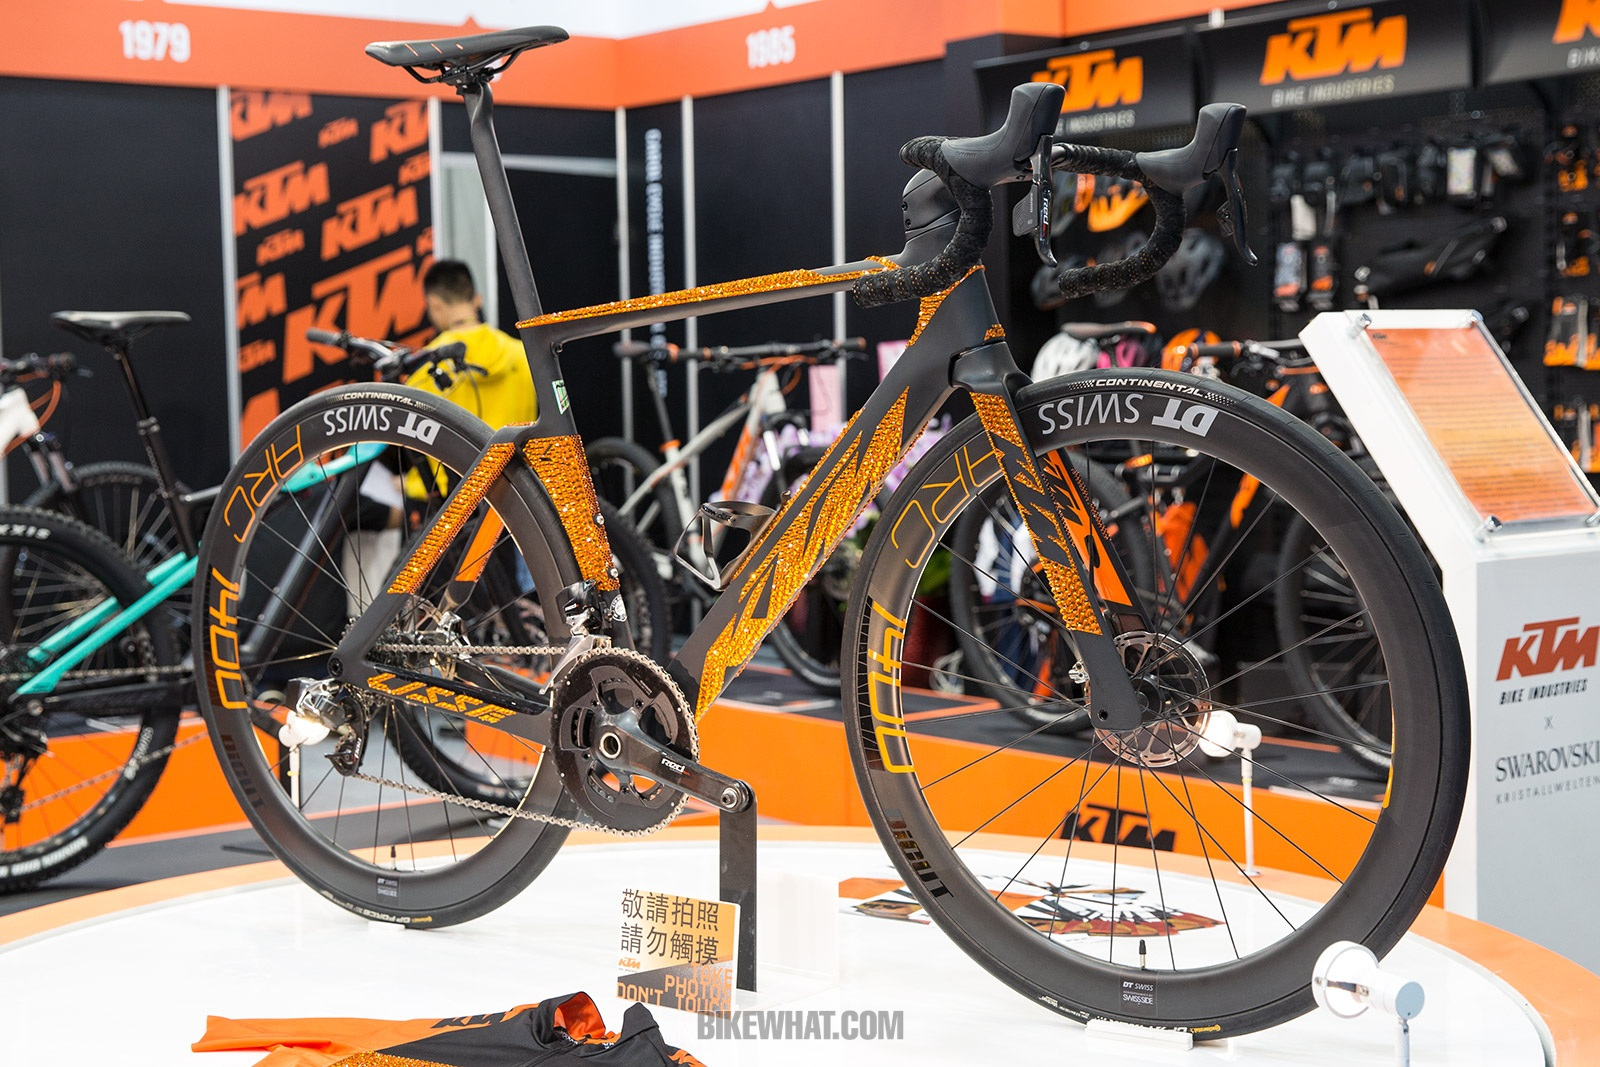 Feature_TaipeiCycle_2019_KTM_1.jpg